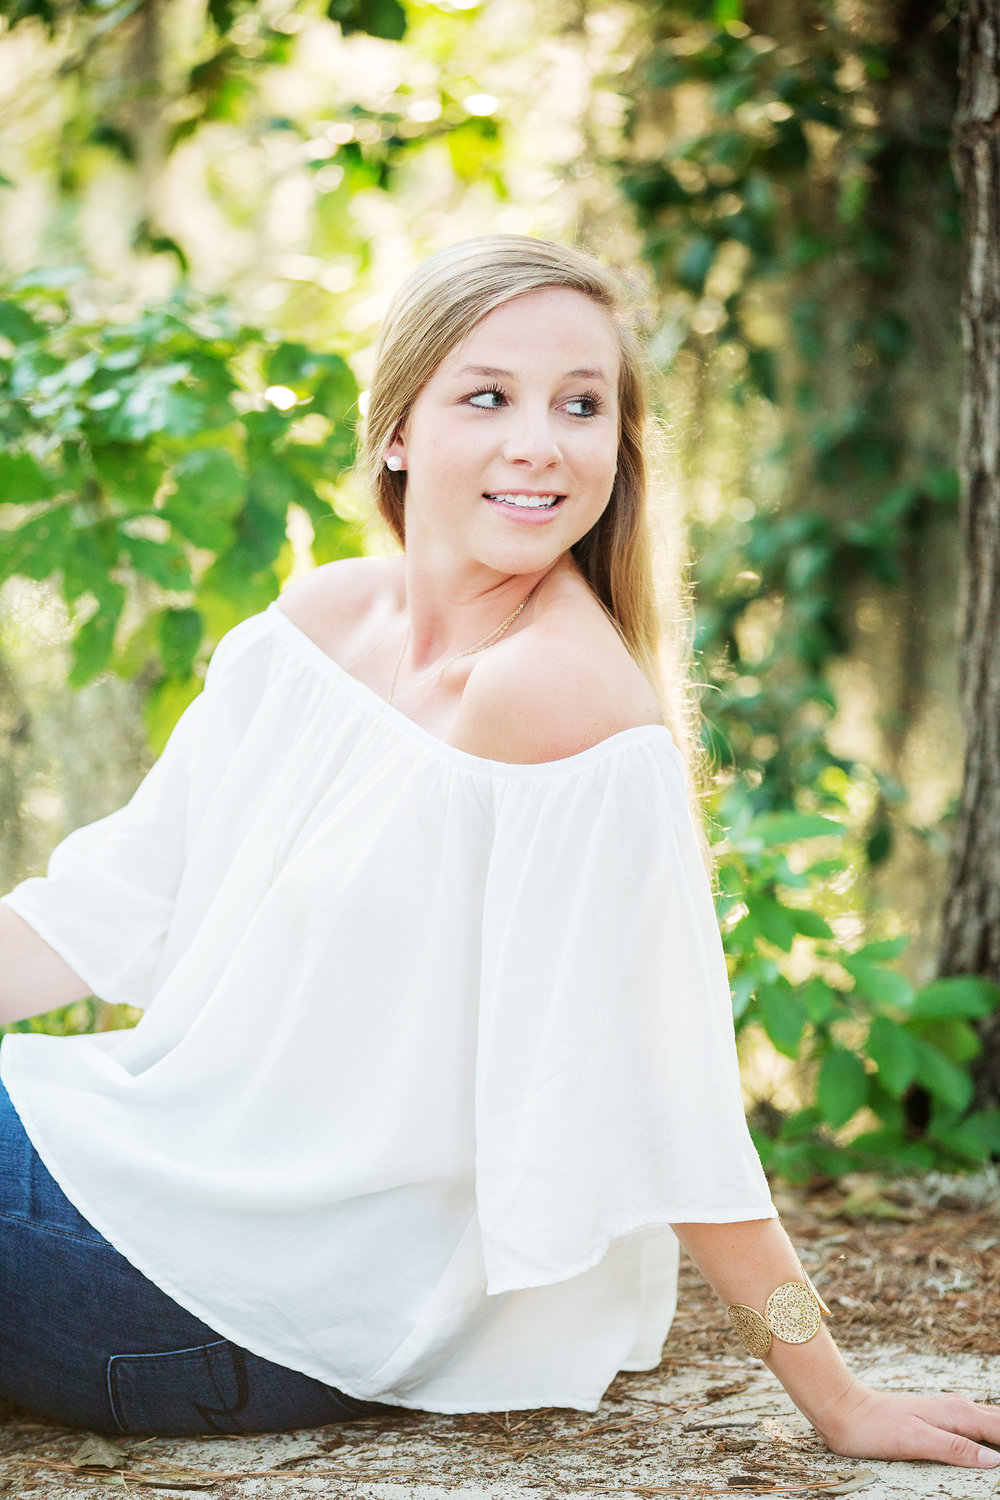 PeytonSeniorPortraits_AL-12 copy.jpg